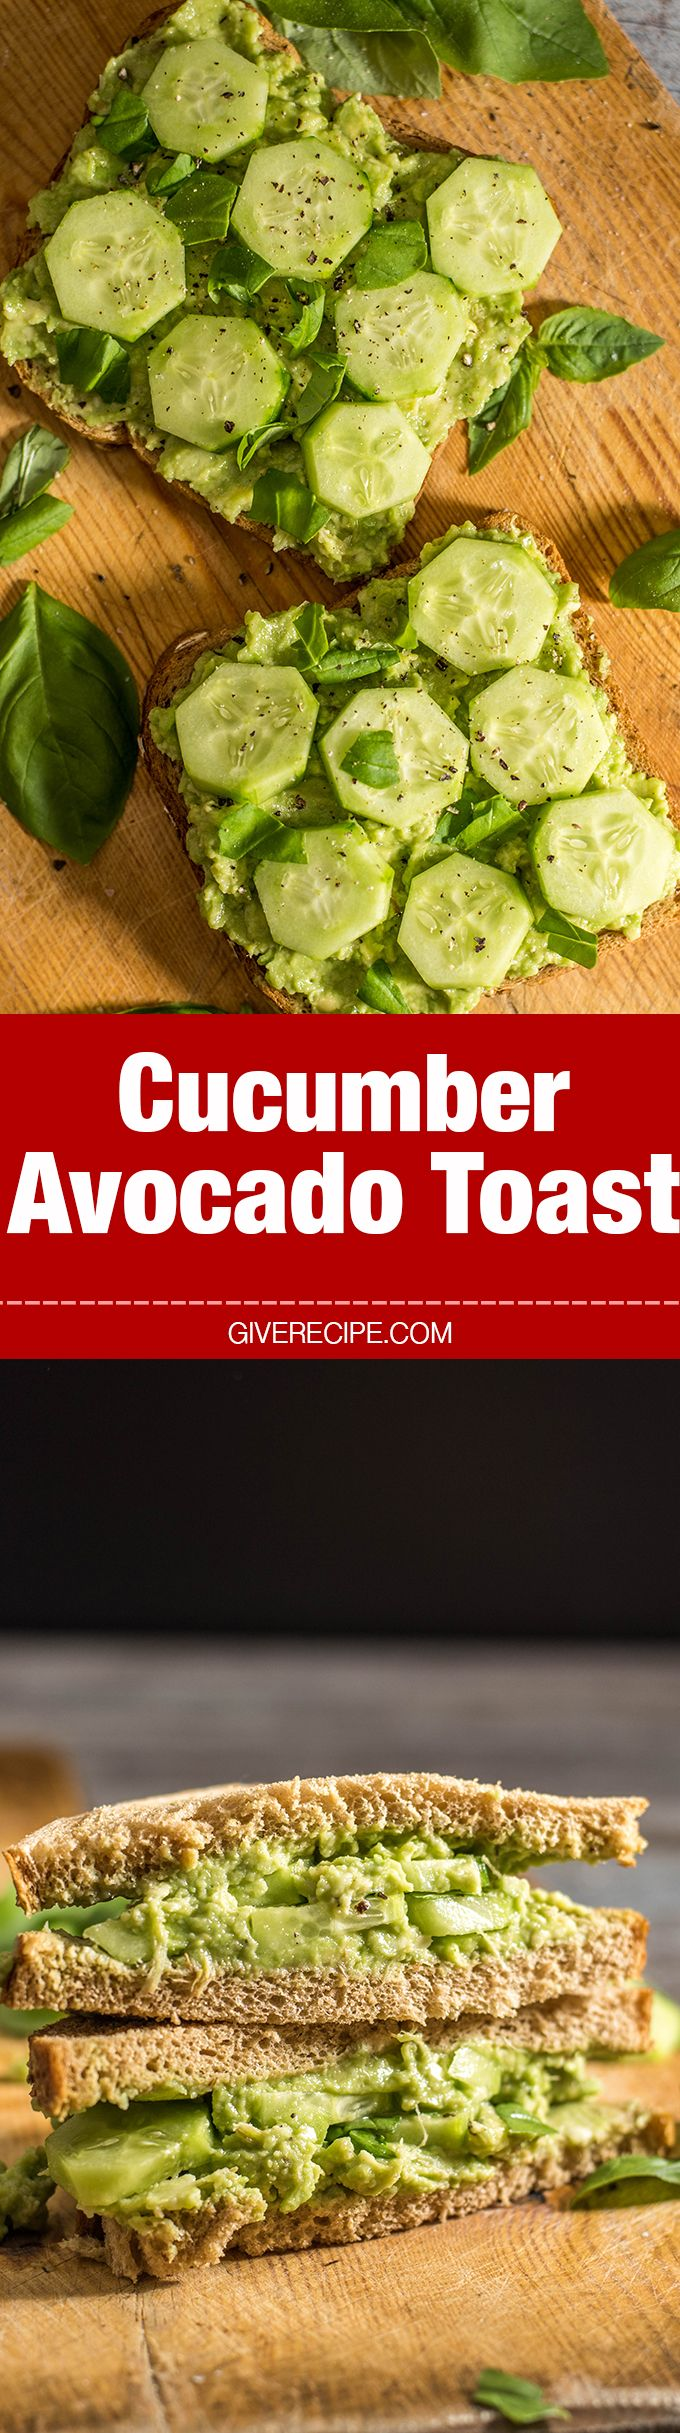 Make this Cucumber Avocado Toast whenever you need quick, easy yet tasty and healthy lunch. This has become my favorite summer sandwich! Vegan too. - giverecipe.com